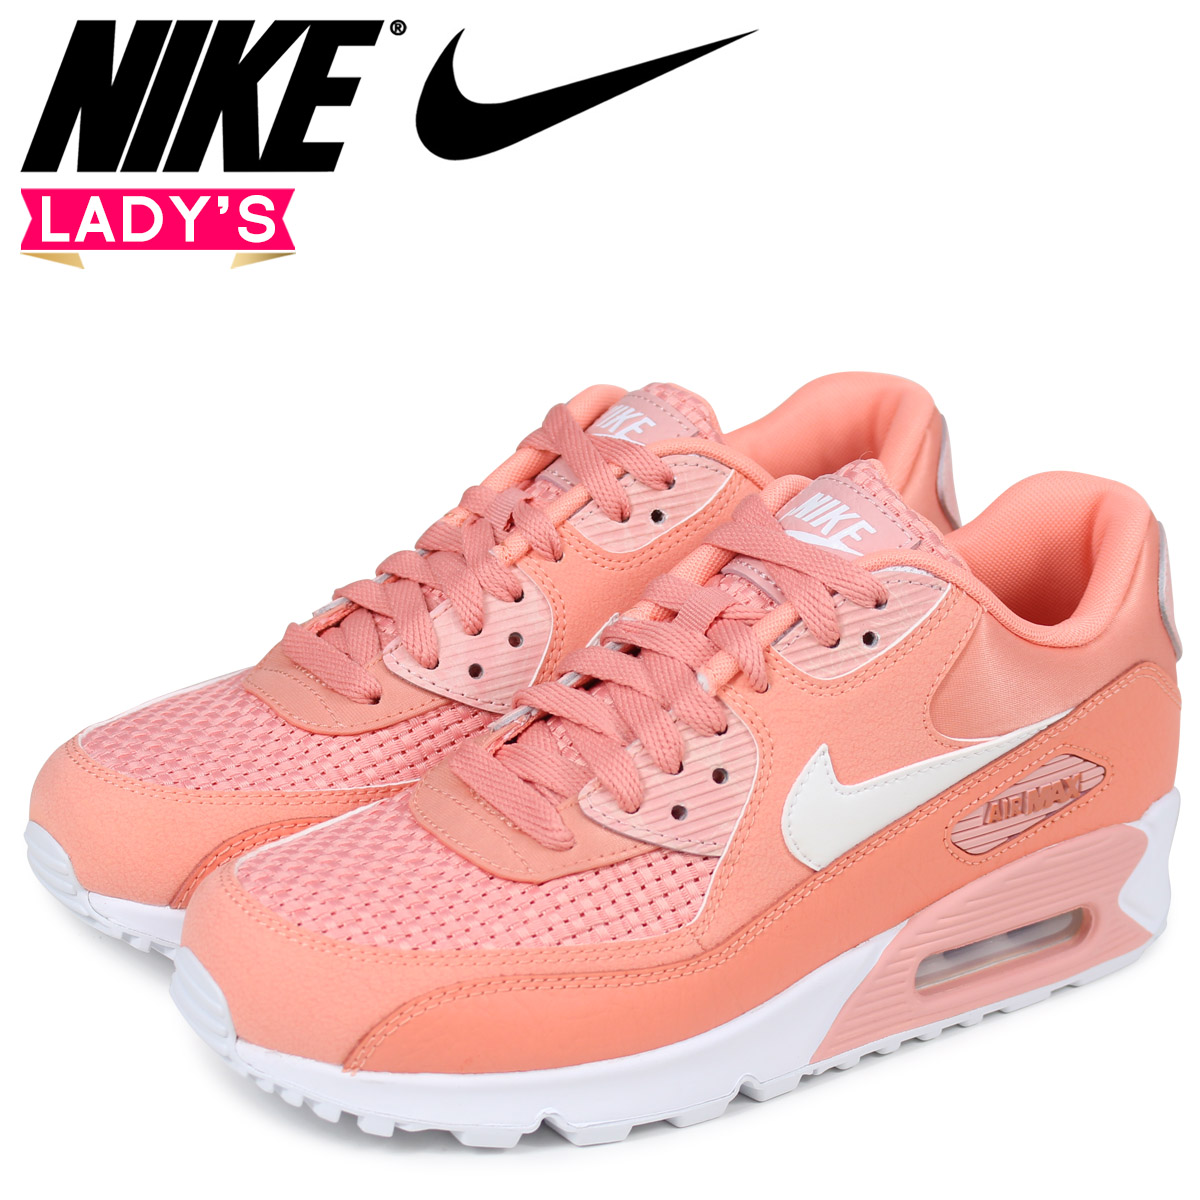 NIKE Kie Ney AMAX 90 Lady's sneakers WMNS AIR MAX 90 SE 881,105 604 pink